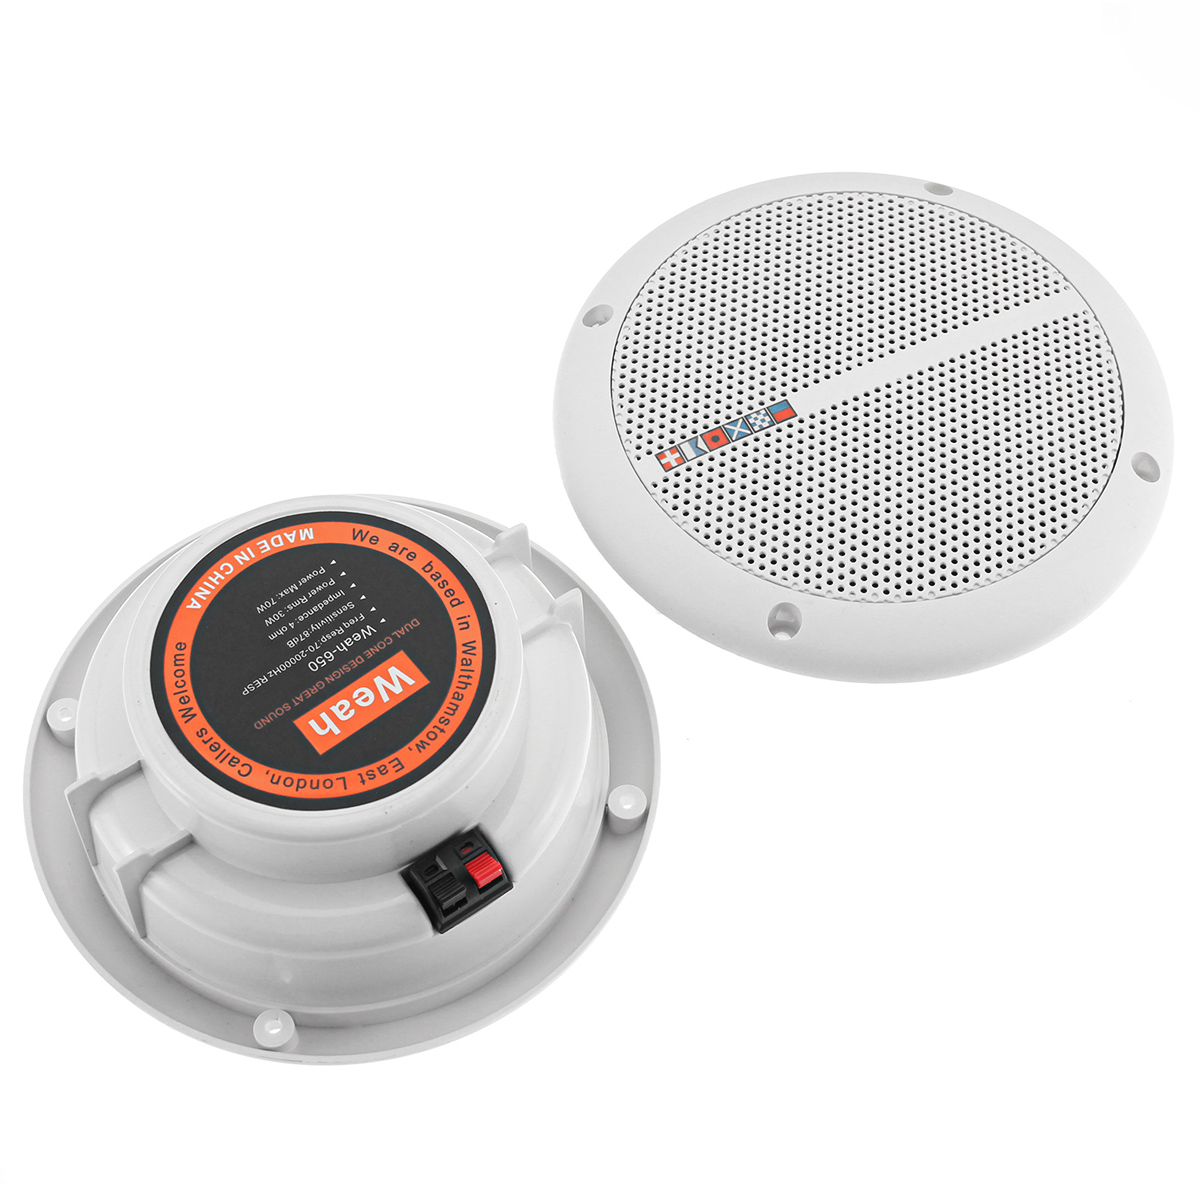 2Pcs Ceiling Speaker Systems Waterproof 2 Way Mount Home Background Loundspeaker Amplifier In Wall/Boat/Car/Marine Music Player